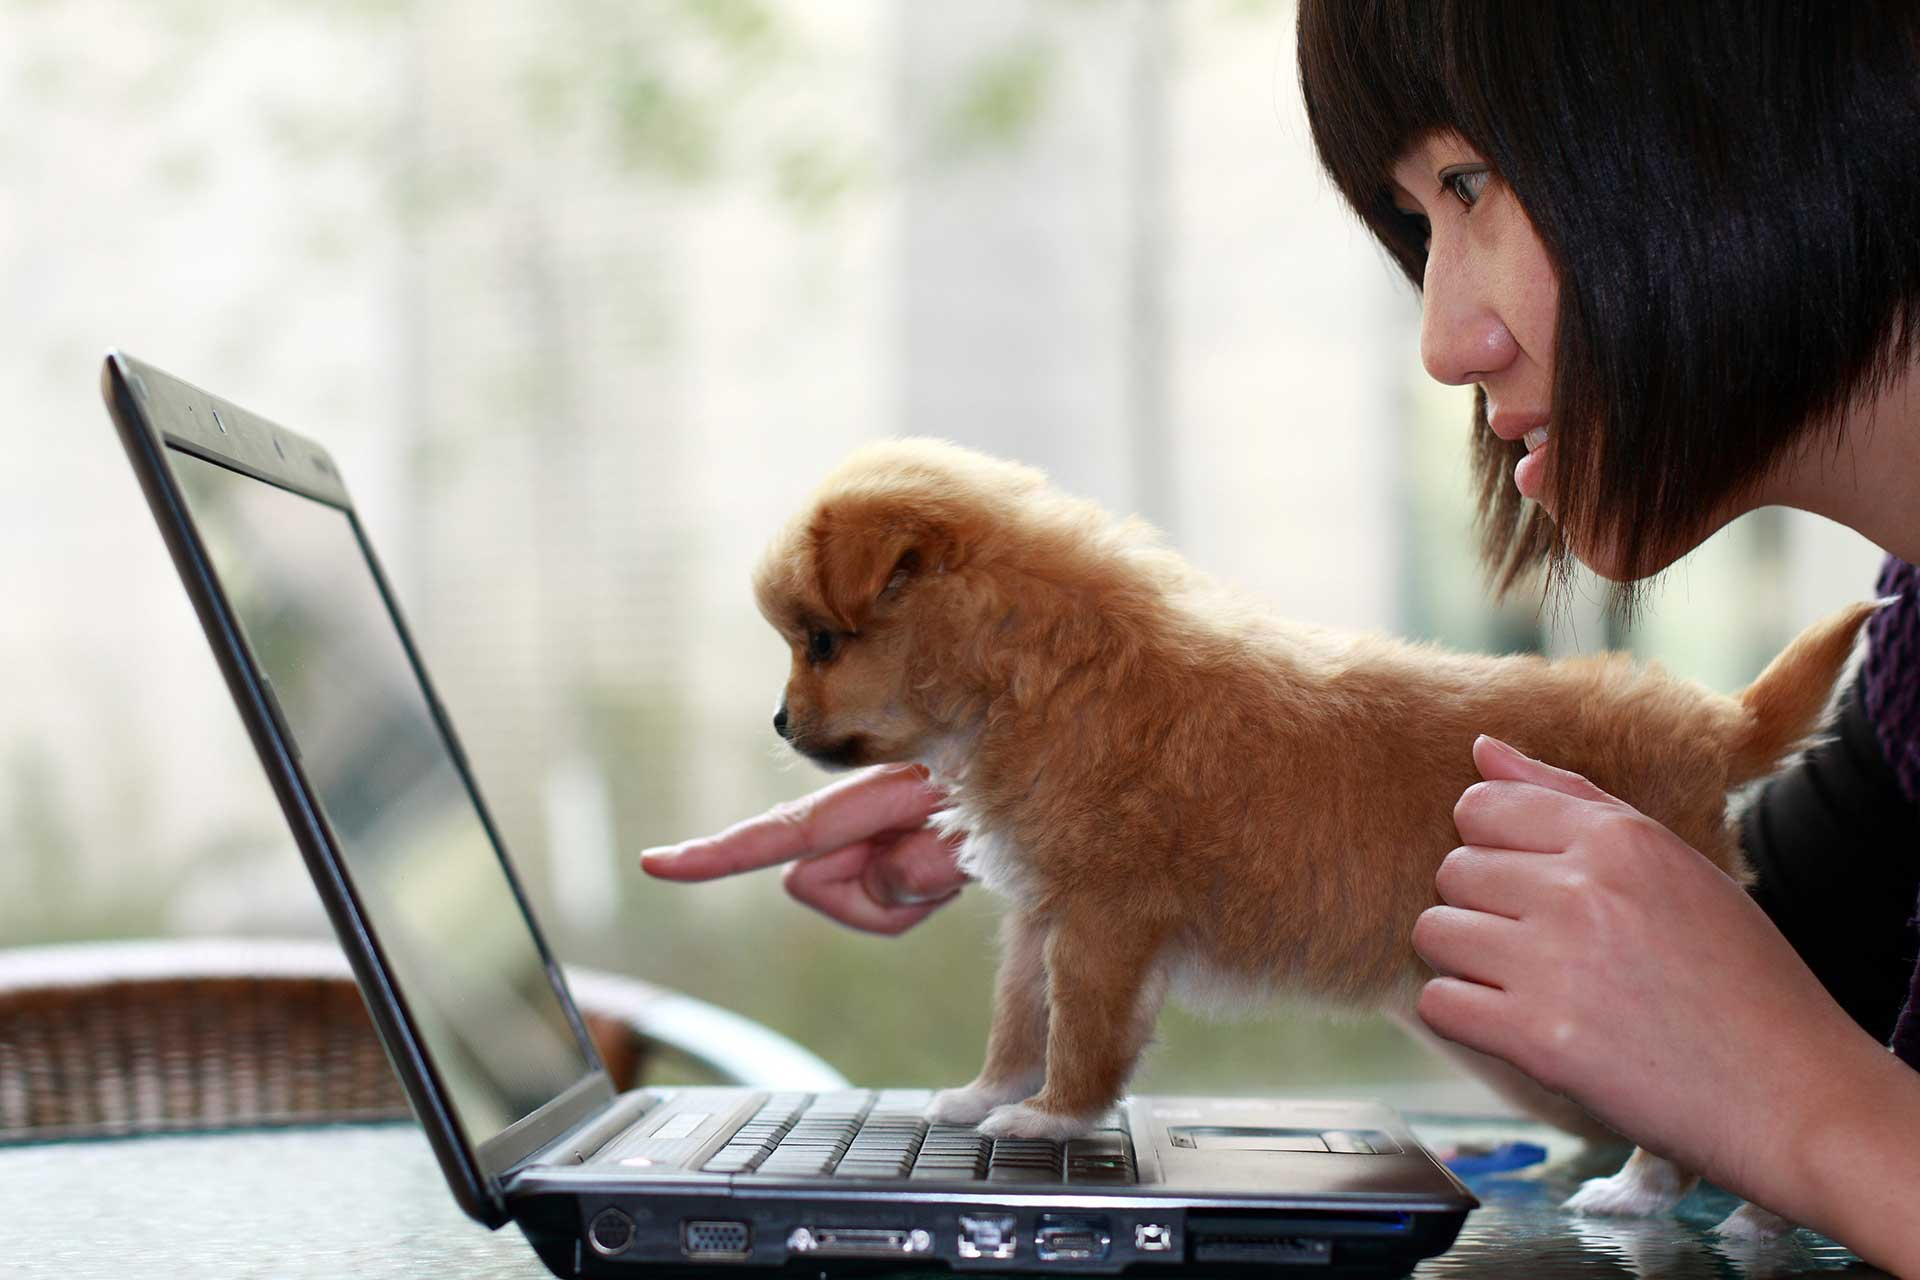 Woman with dog at computer